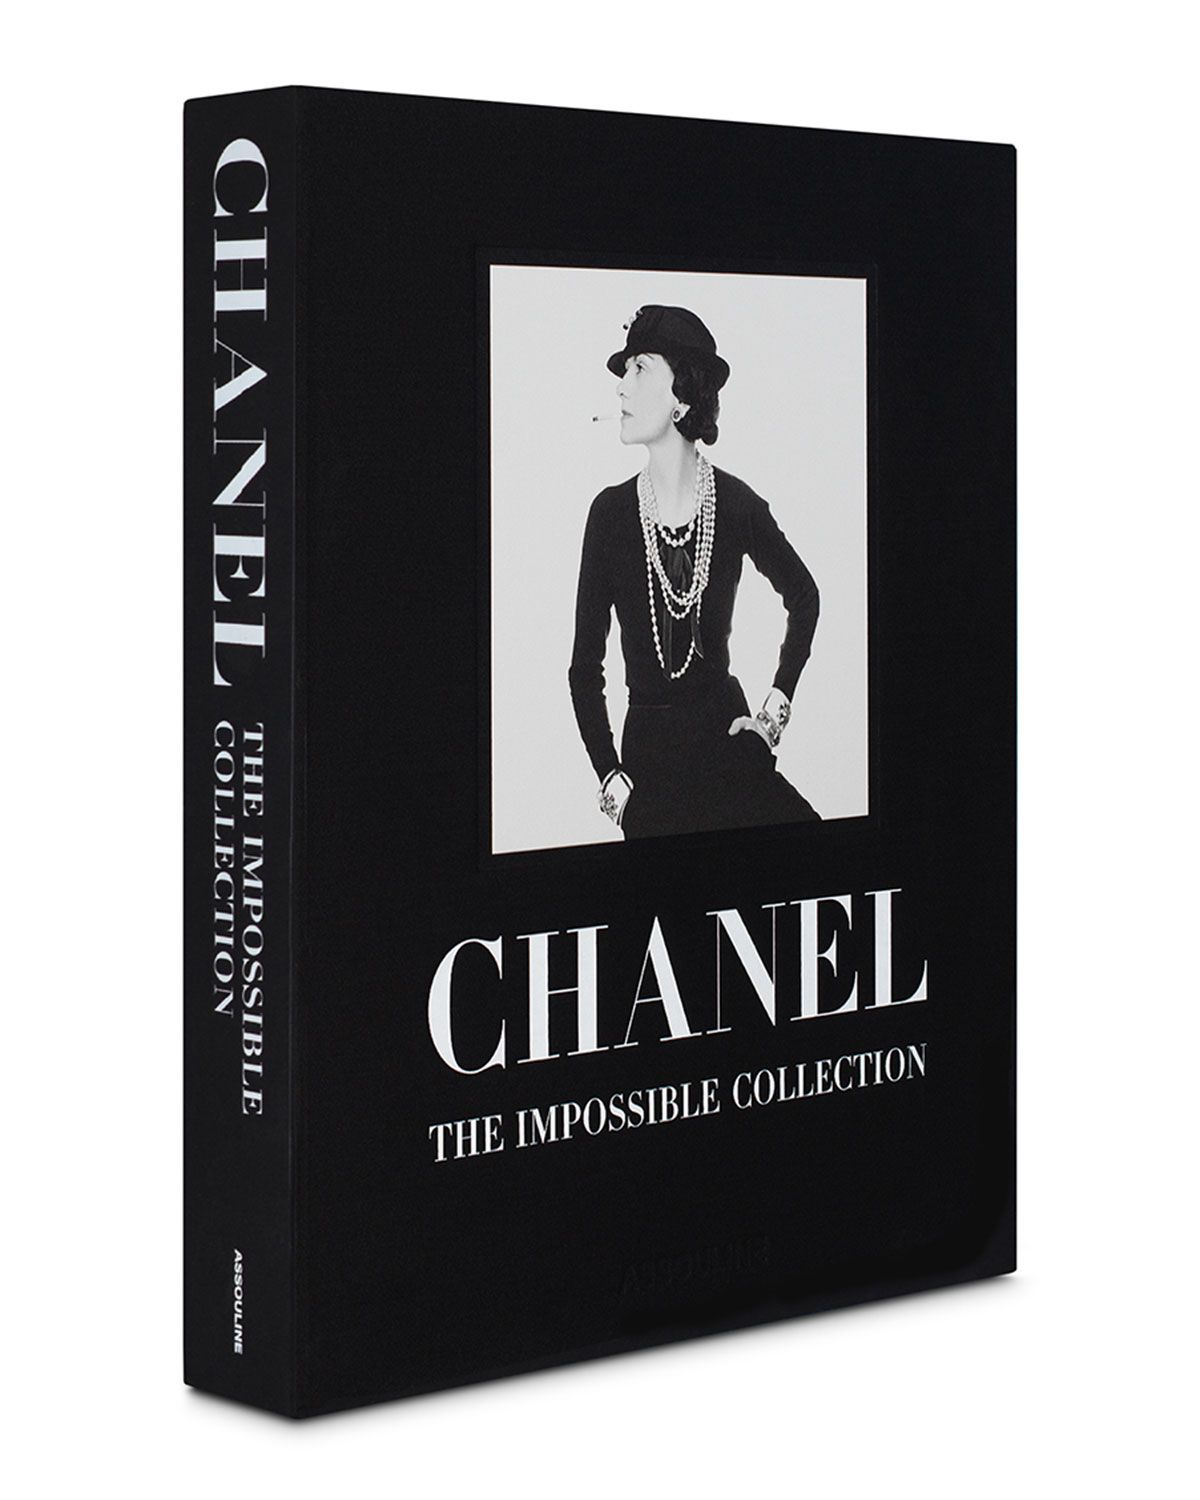 Assouline Chanel The Impossible Collection Book By Alexander Fury Chanel Book Assouline Coco Chanel Books